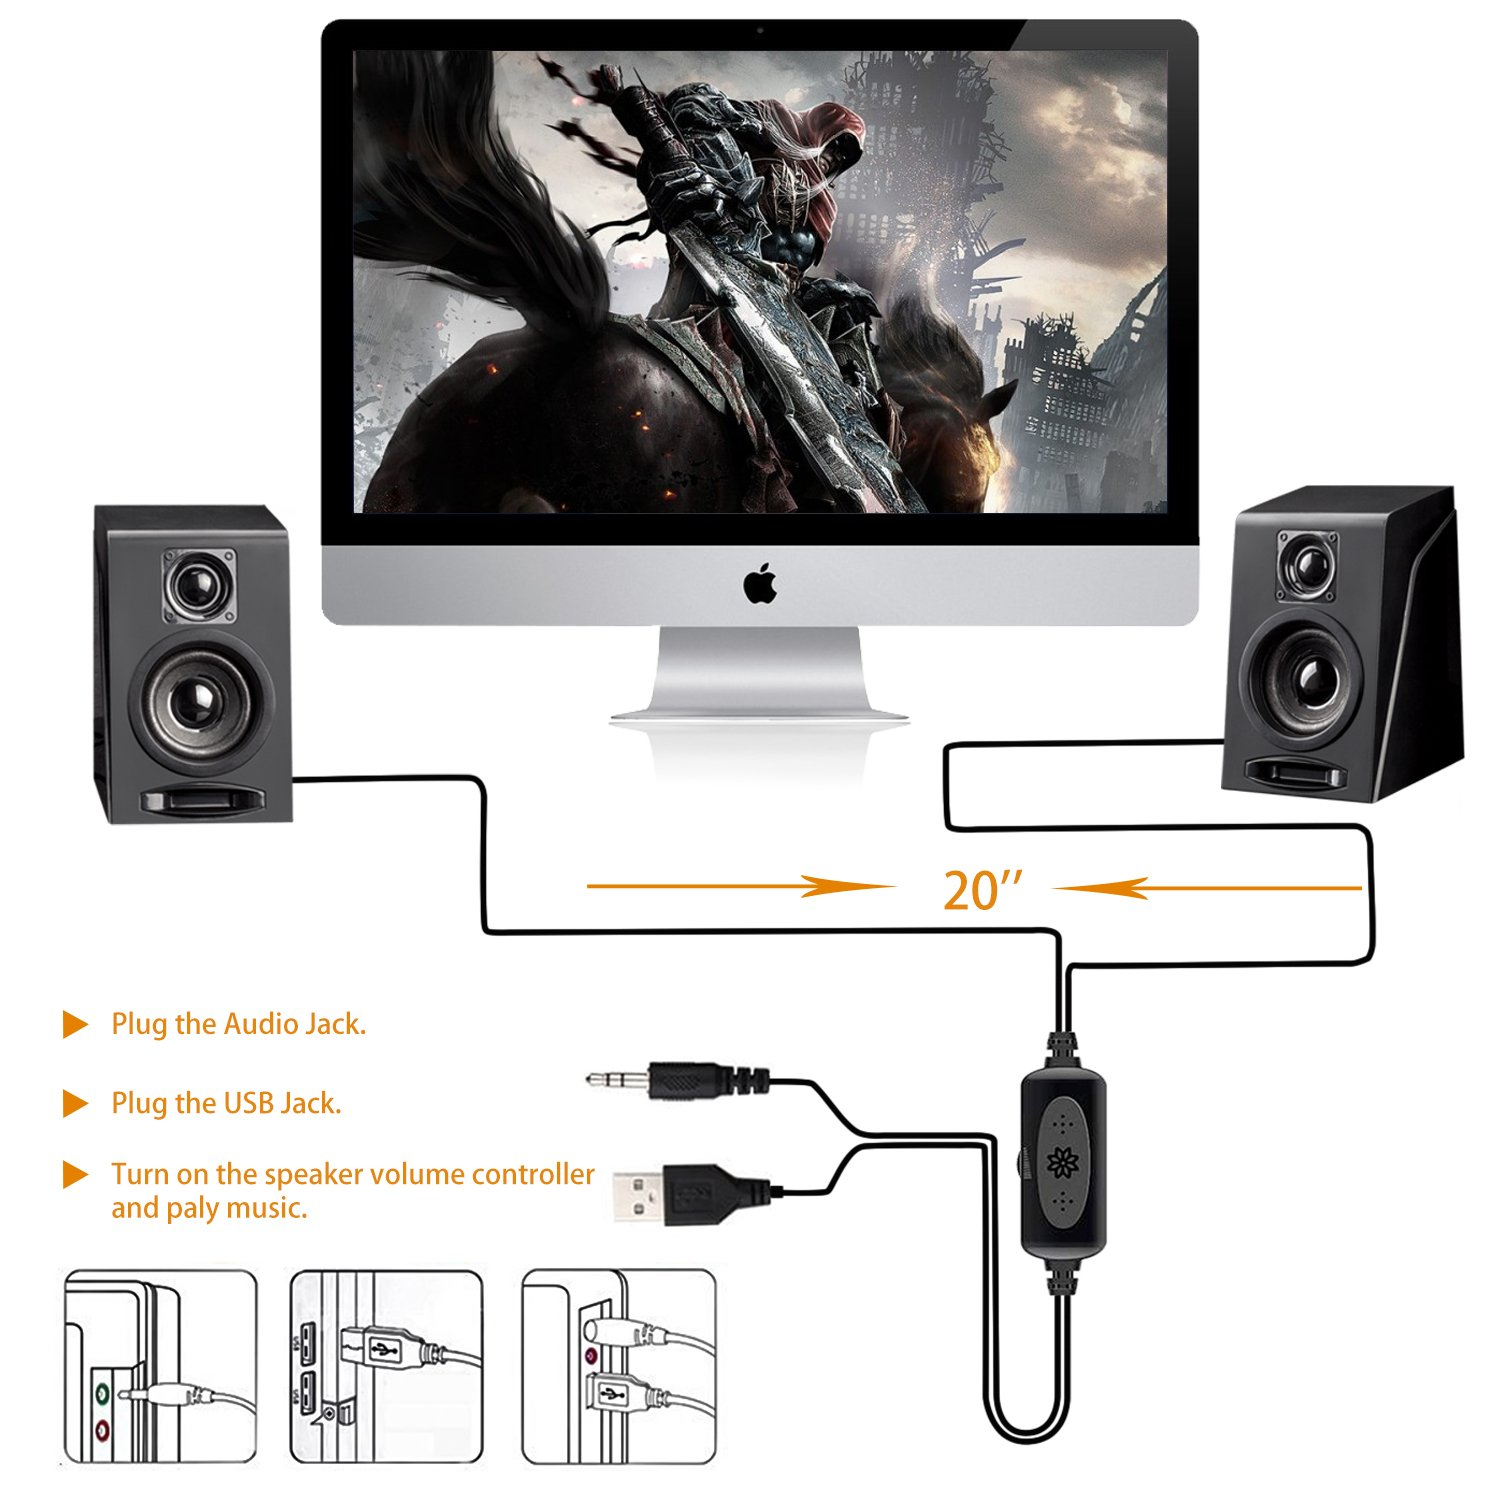 USB Powered Computer Speakers, Wired Stereo Desktop Bookshelf Laptop Speakers with Volume Control Ideal for Notebook, Laptop, PC, Desktop Tablet by Meetuo (Image #6)